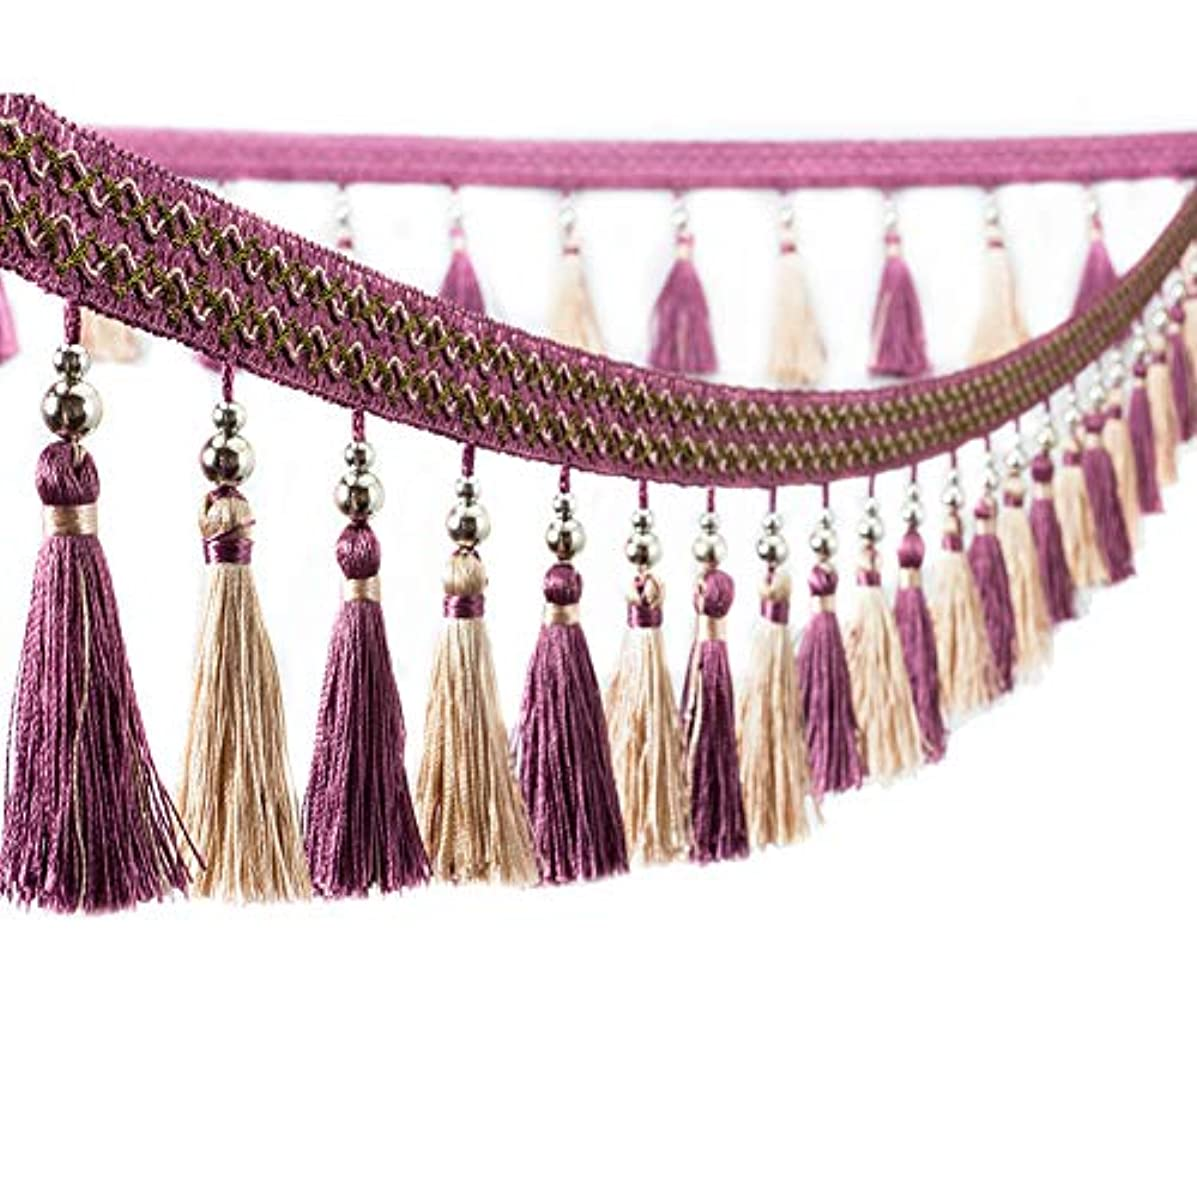 Trycooling 12.5 Yard Multicolor Beaded Hanging Ball Tassel Fringe Trim for Curtain Home Decoration (Purple)